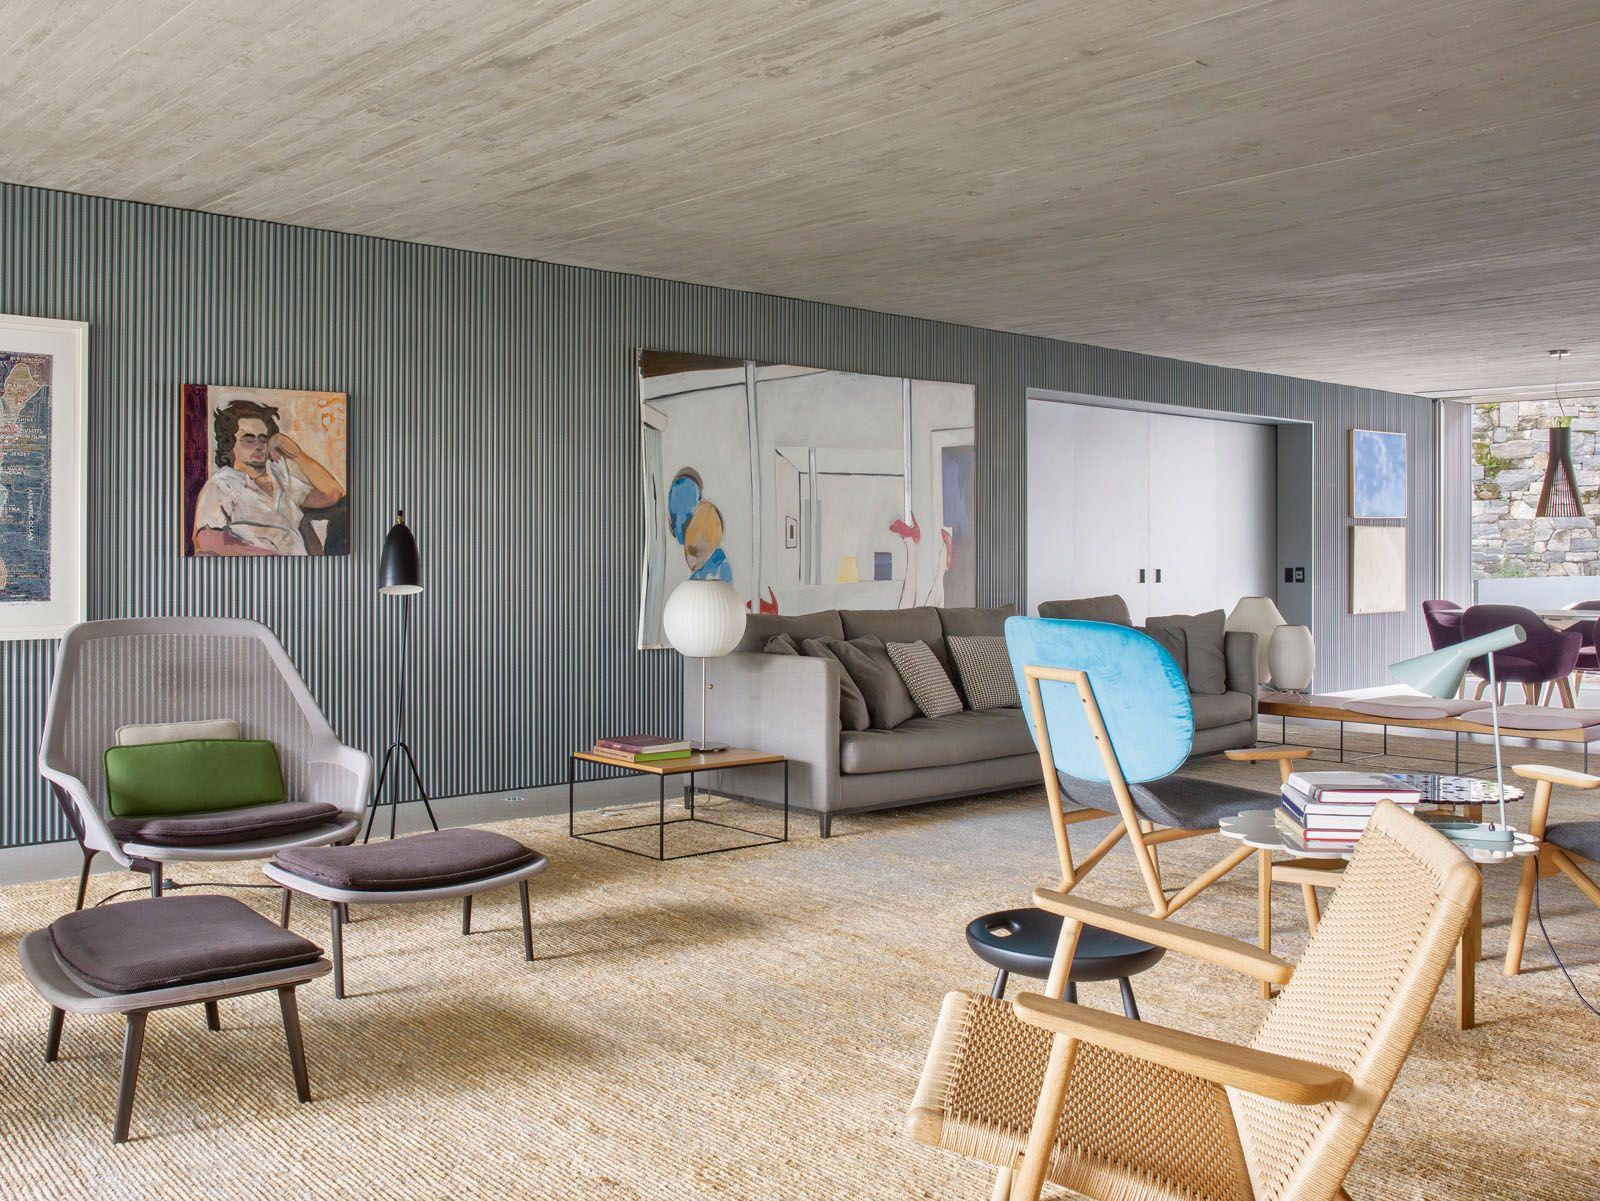 Furnishings in the living area include the Vitra Slow armchair by Ronan & Erwan Bouroullec and the Minotti Andersen Slim 103 sofa by Rodolfo Dordoni